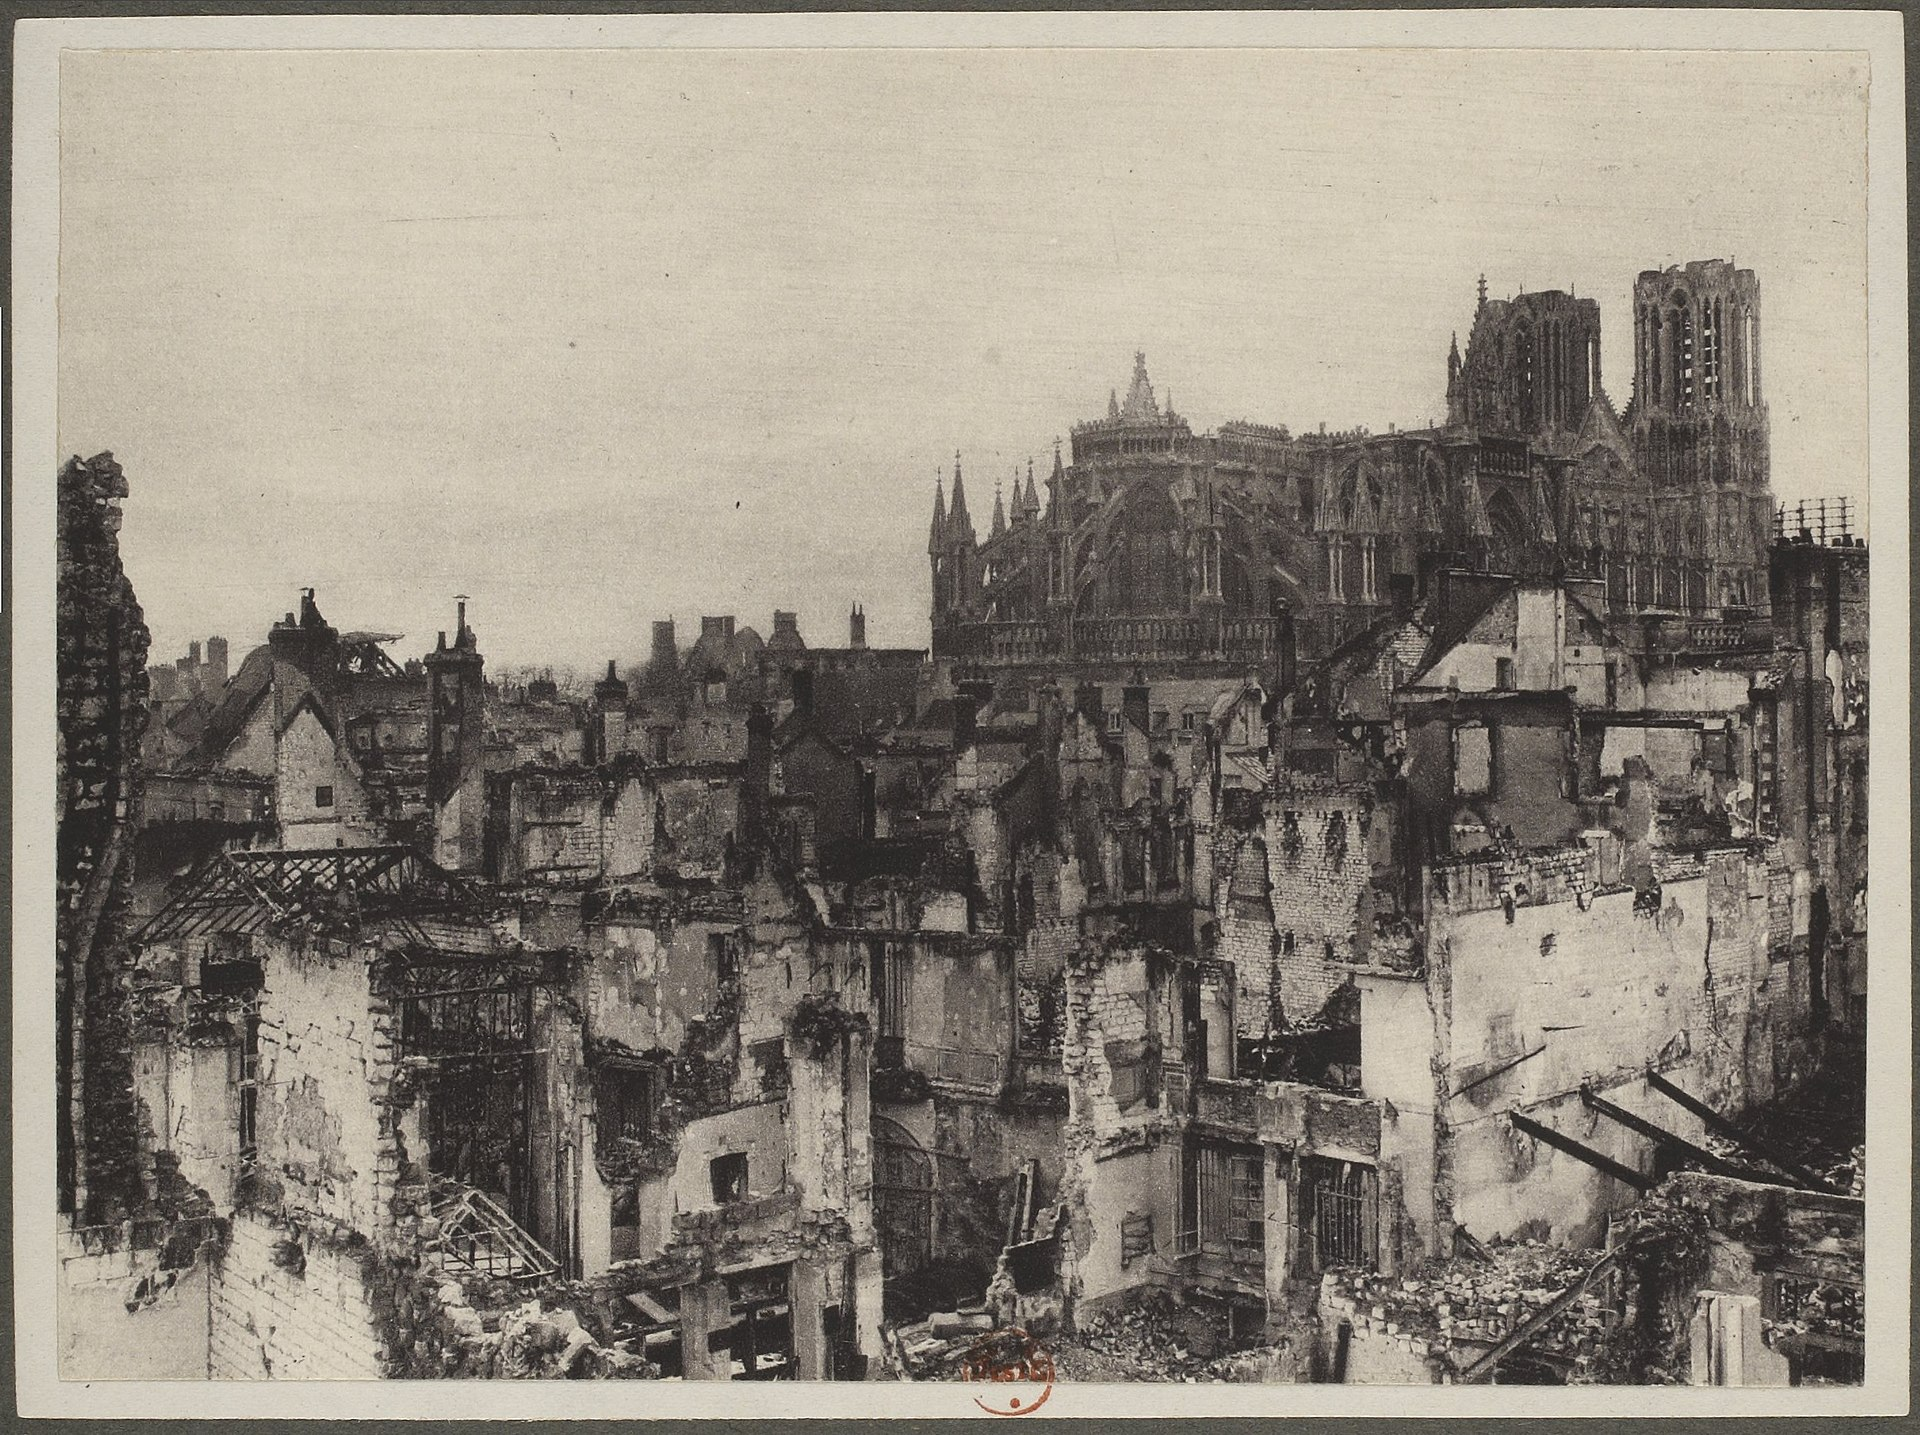 Reims in 1916 after being shelled by Germans